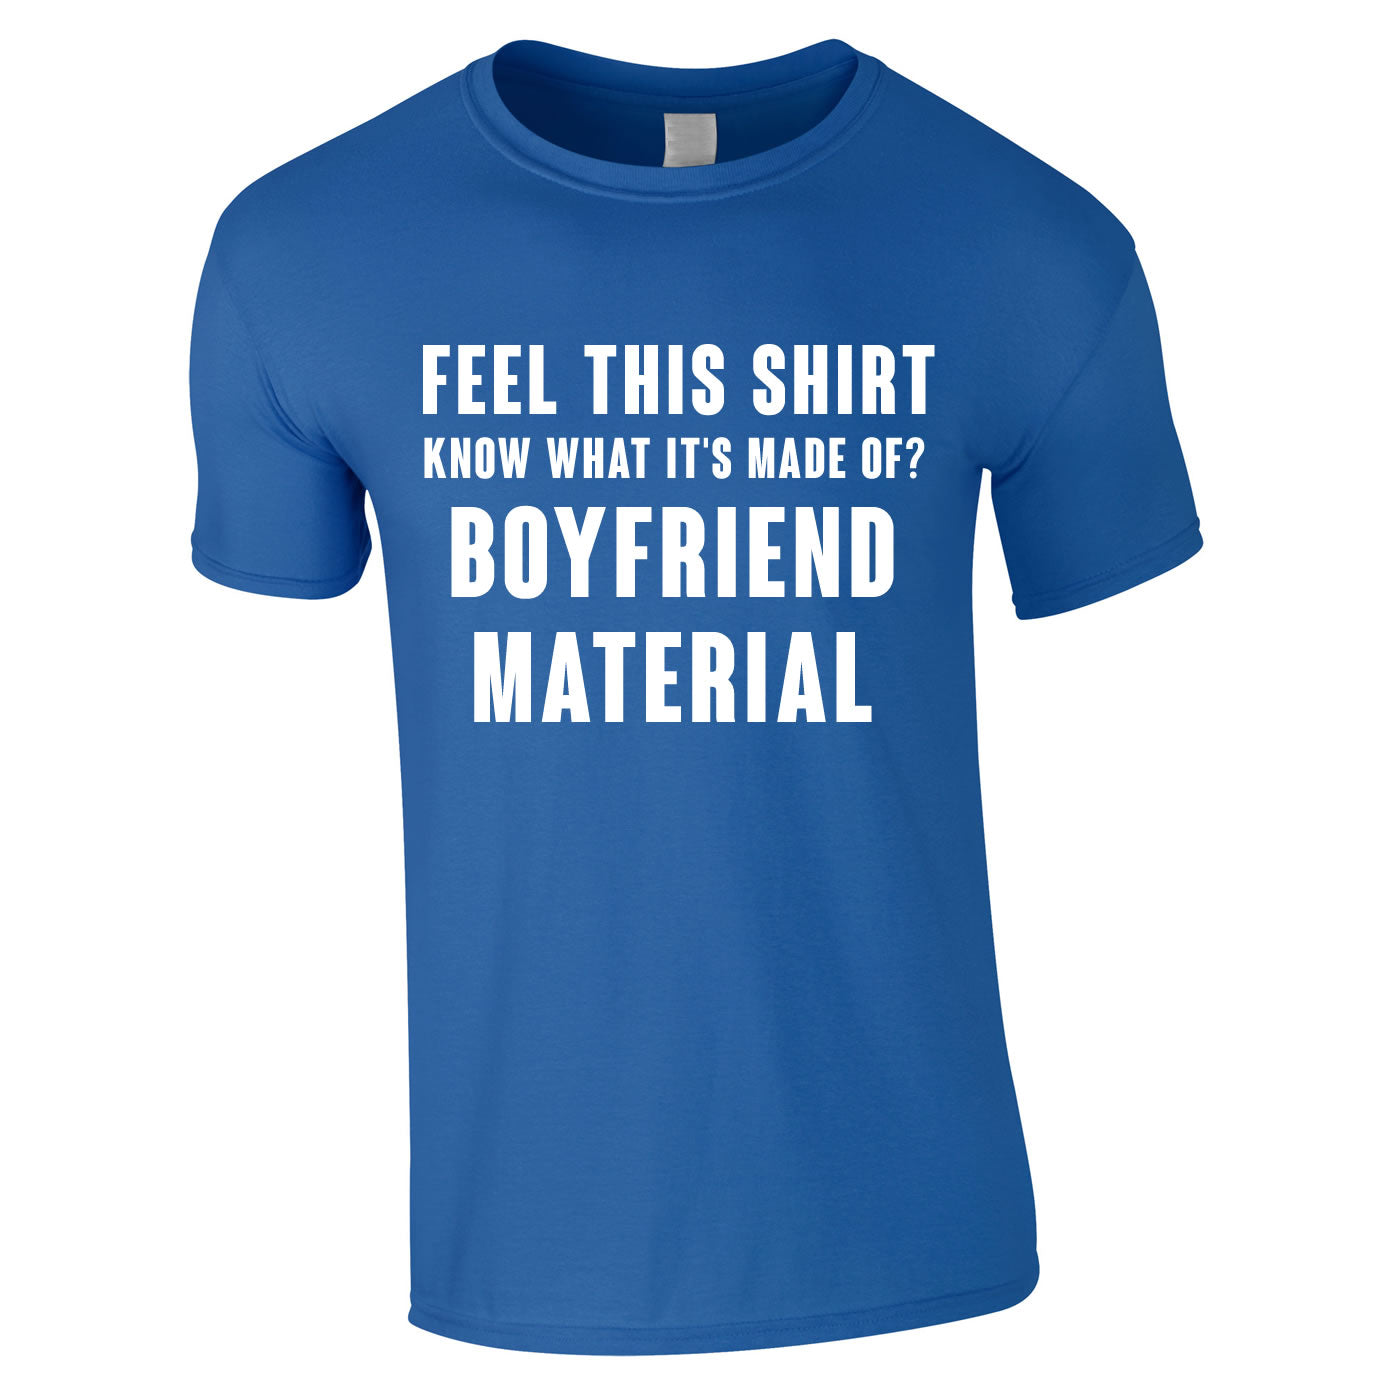 feel this shirt, know what it's made from? Boyfriend material